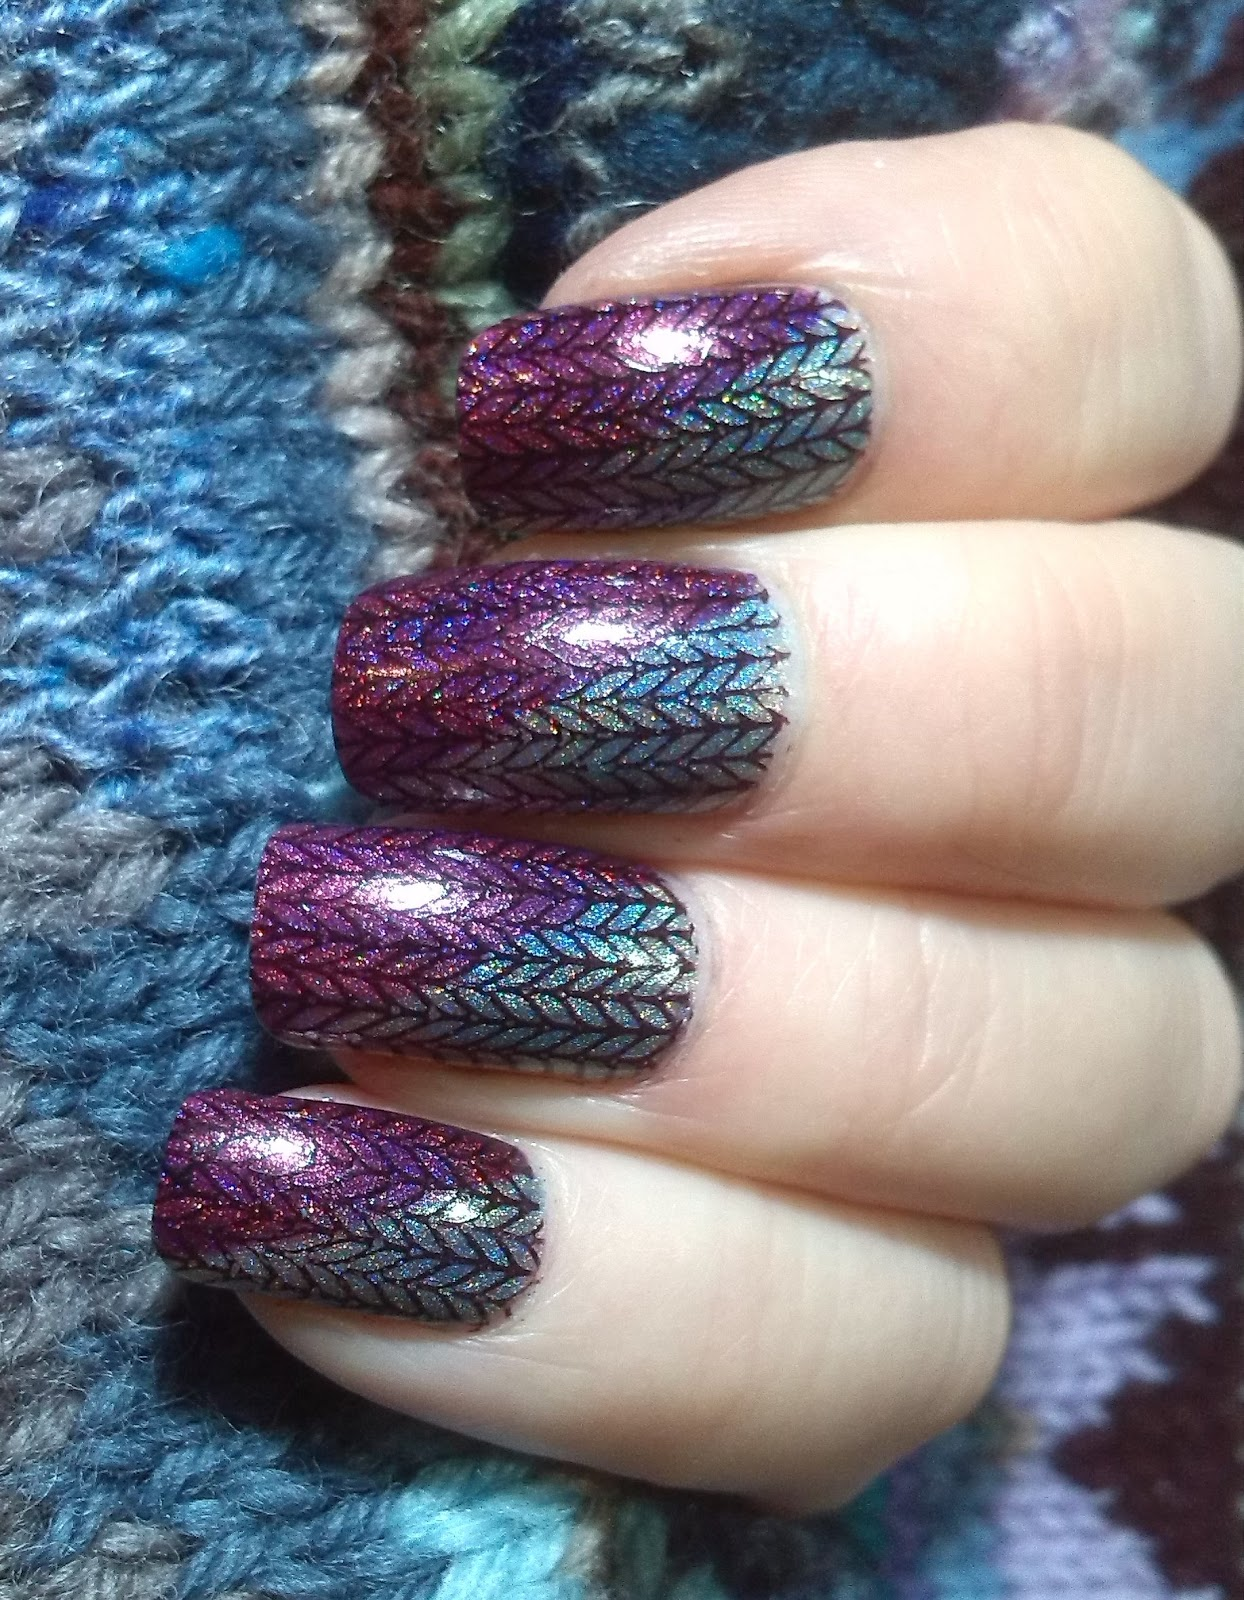 Holographic knitty nails